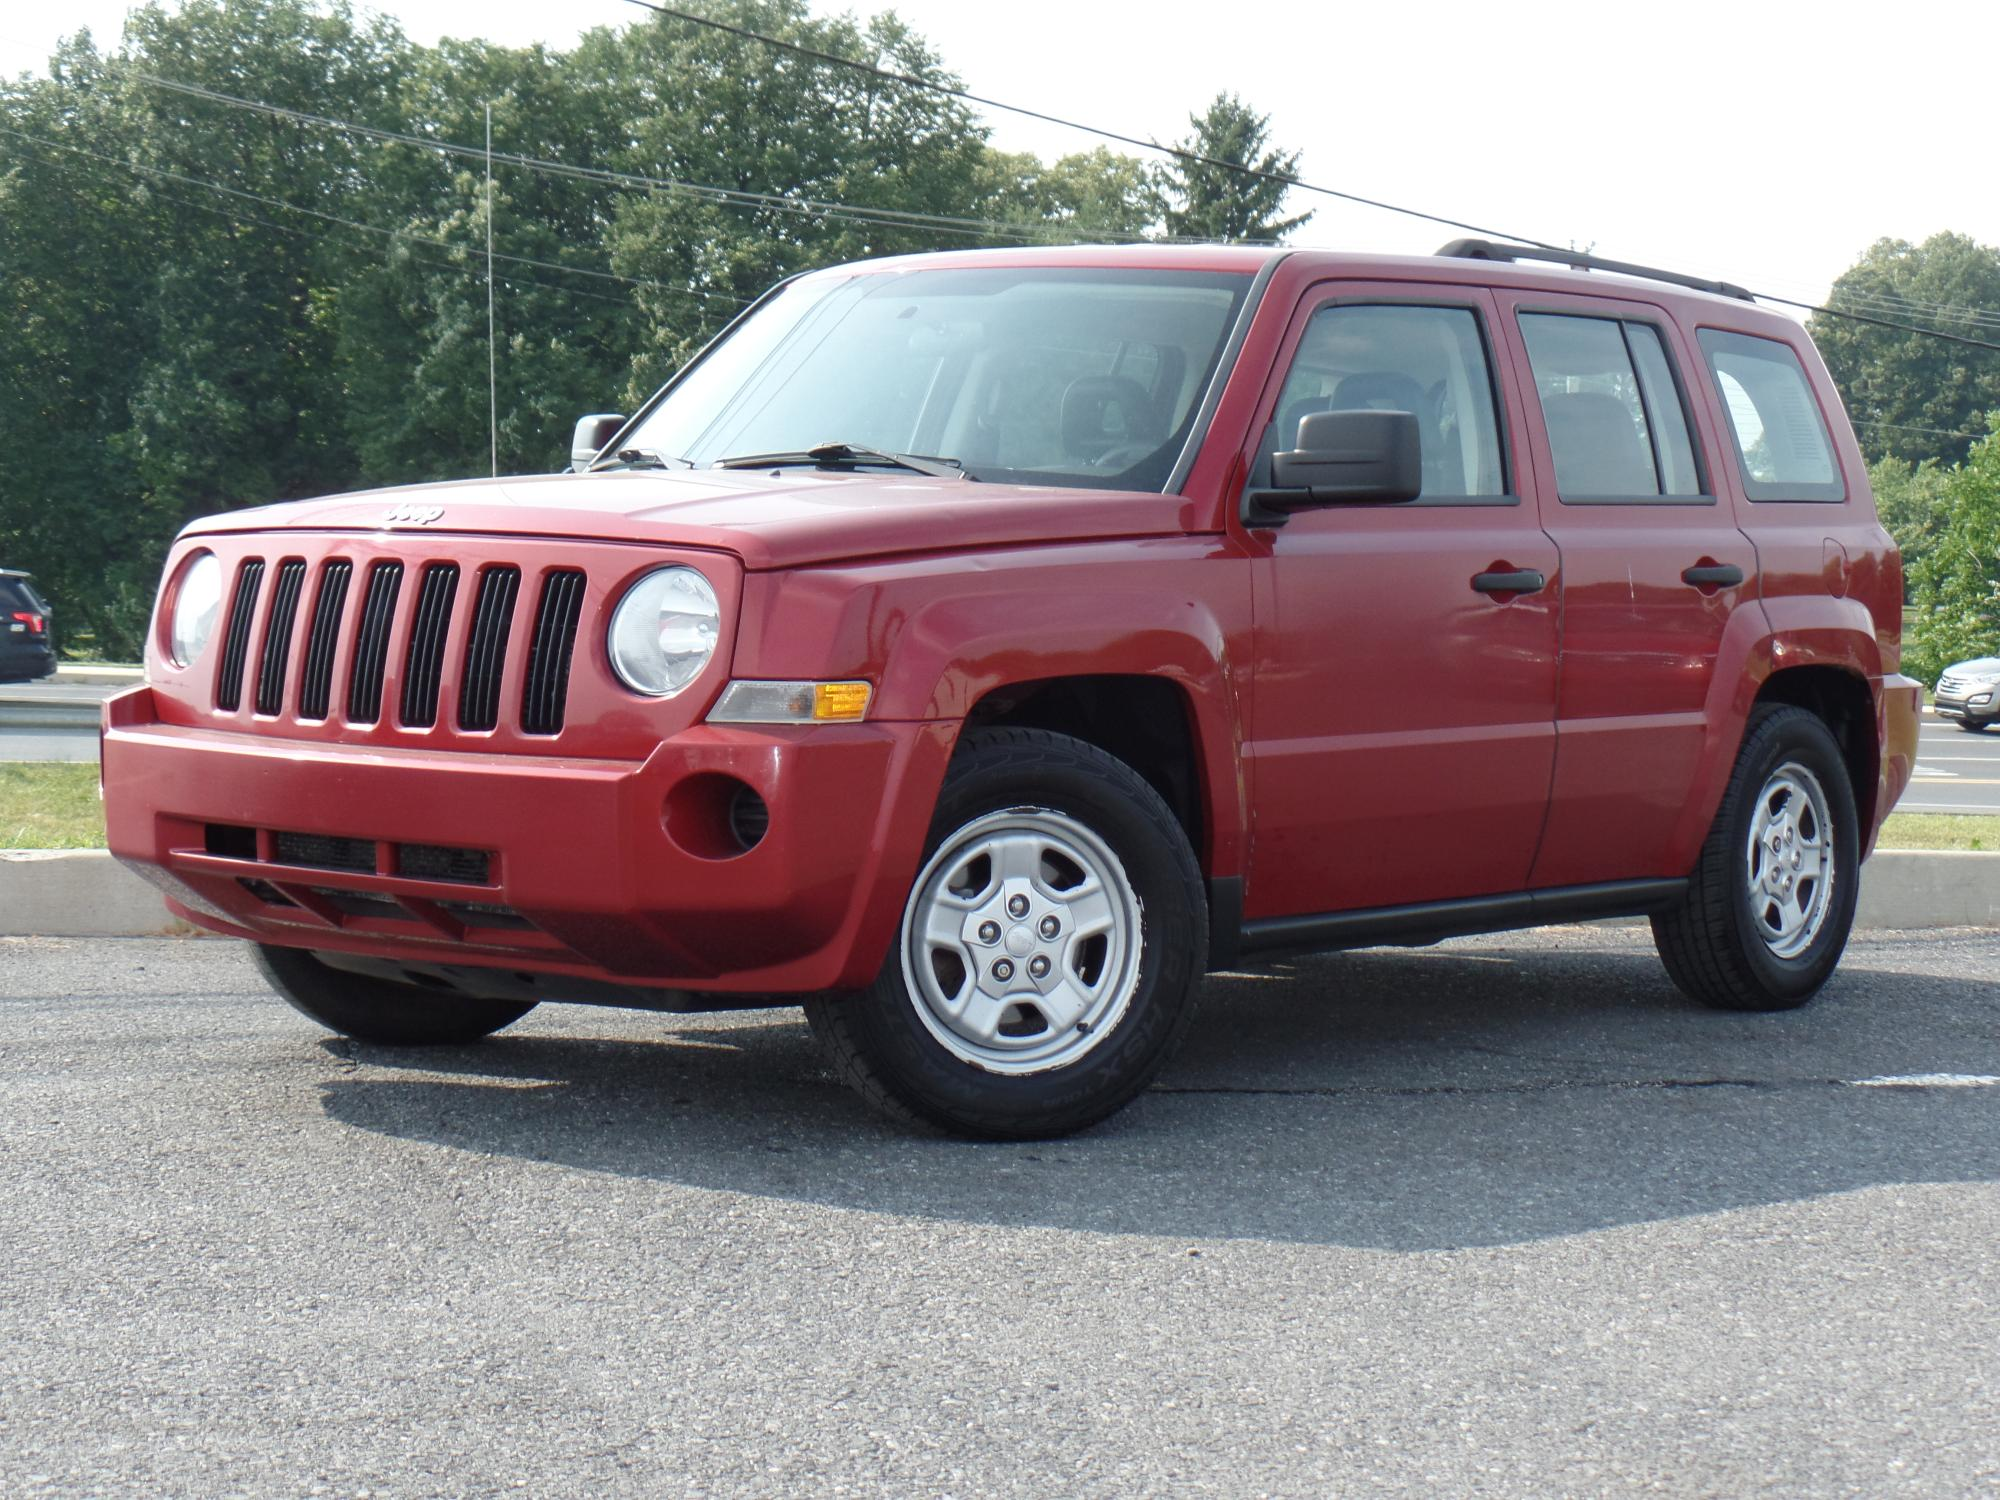 6-18-2018_2008_Jeep_Patriot_707417__1_.JPG